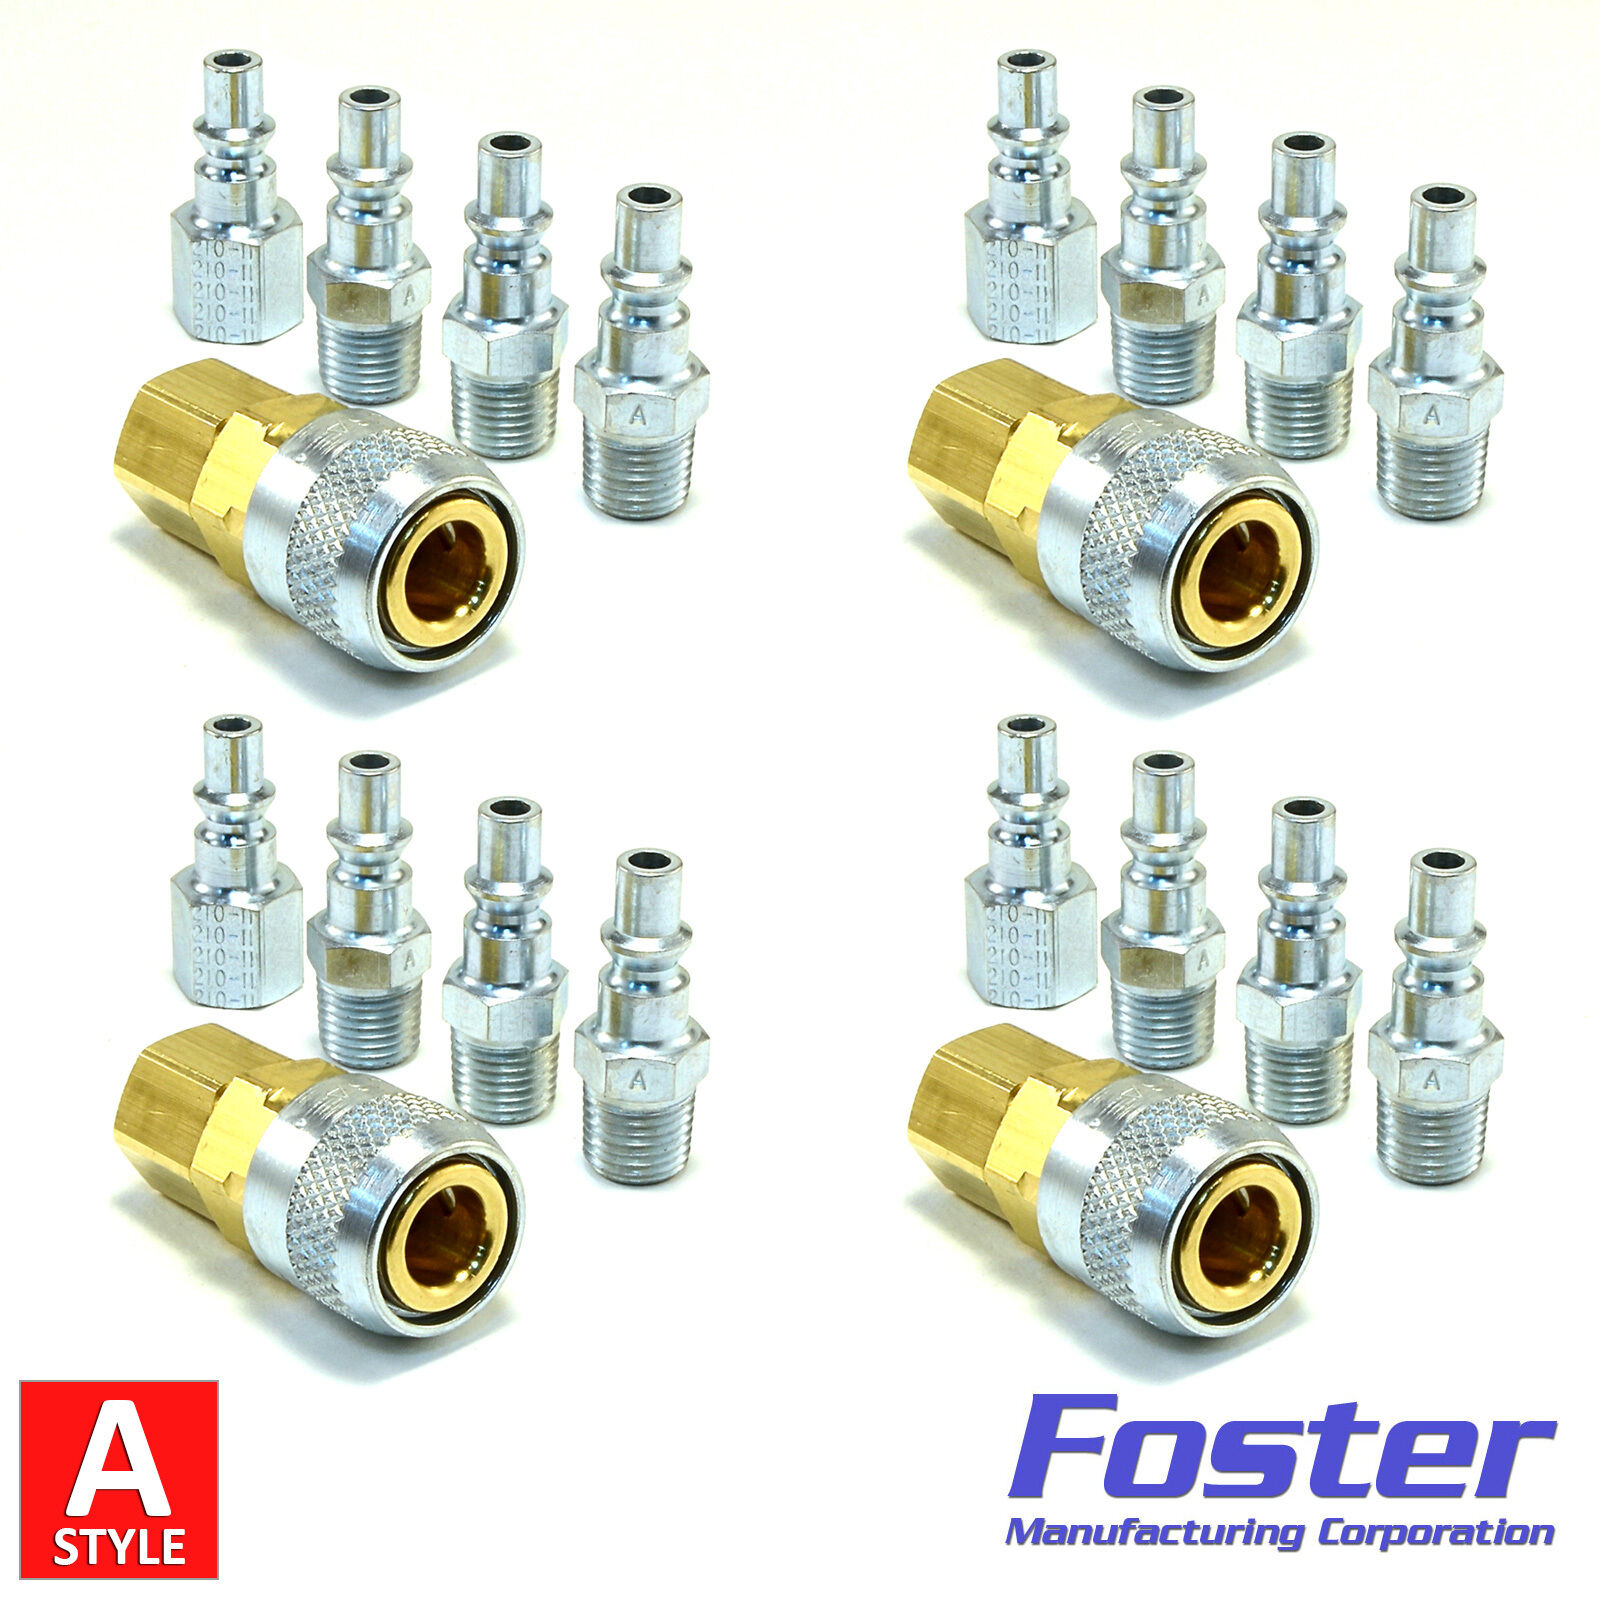 20pc Quick Coupler Set Air Hose Connector Fittings 1/4 NPT Tools Plug Compressor 1 of 12FREE Shipping See More  sc 1 st  PicClick & 20PC Quick Coupler Set Air Hose Connector Fittings 1/4 NPT Tools ...